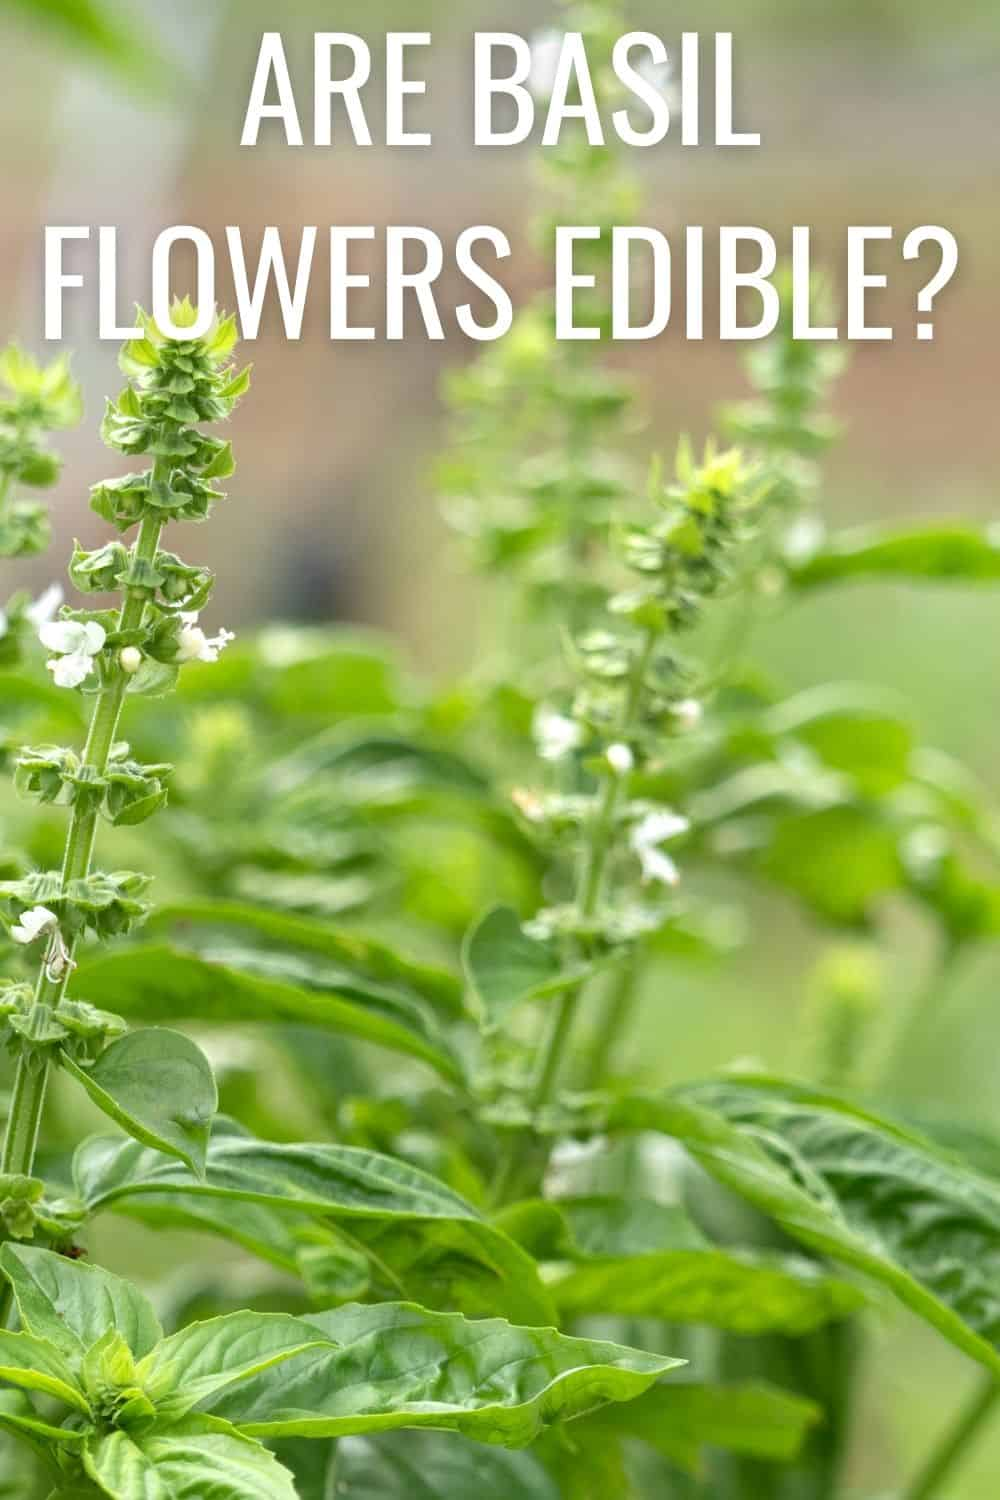 Are basil flowers edible?